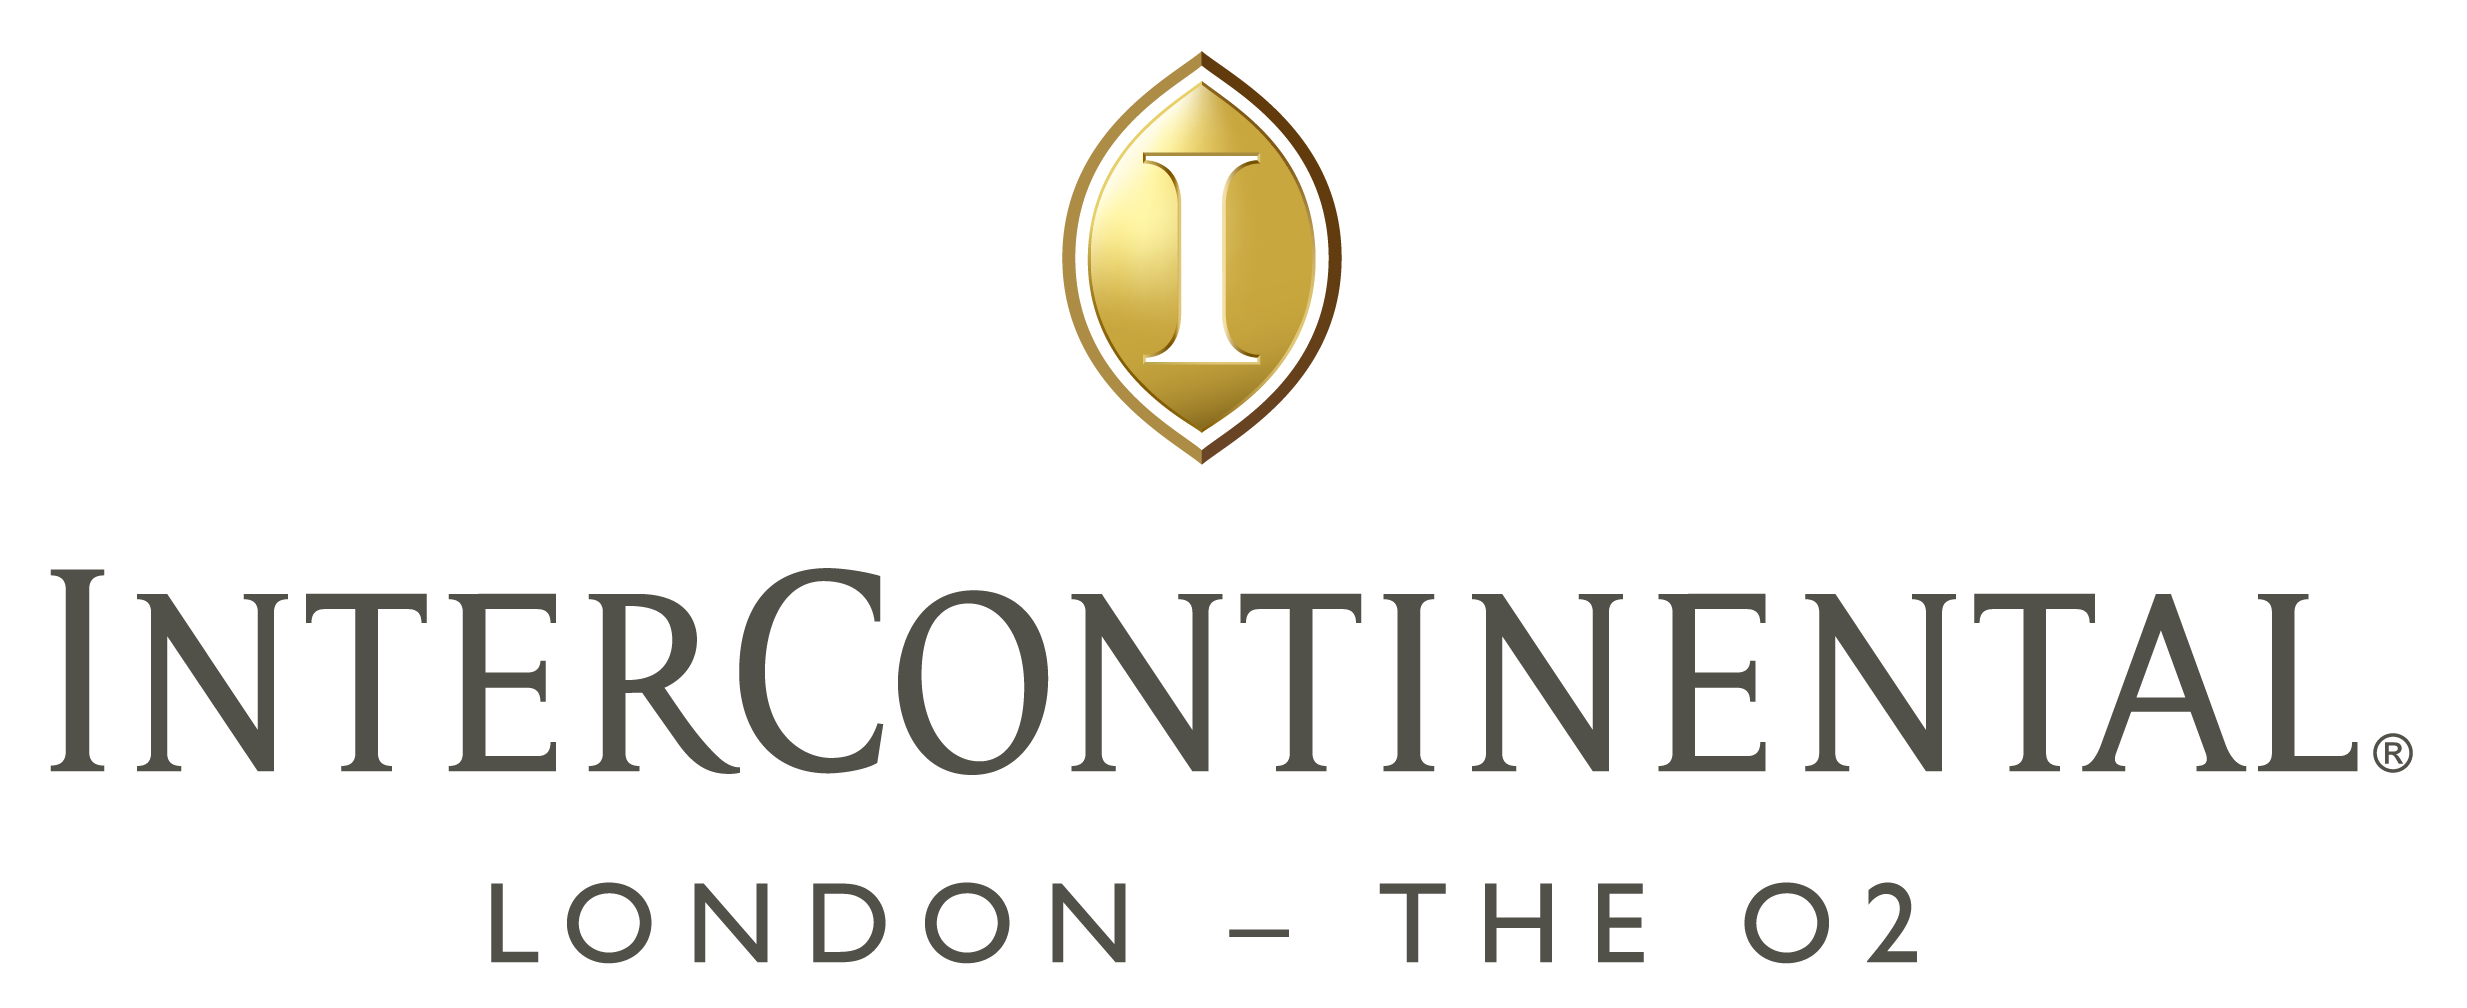 InterContinental_Hotel_Logo.png